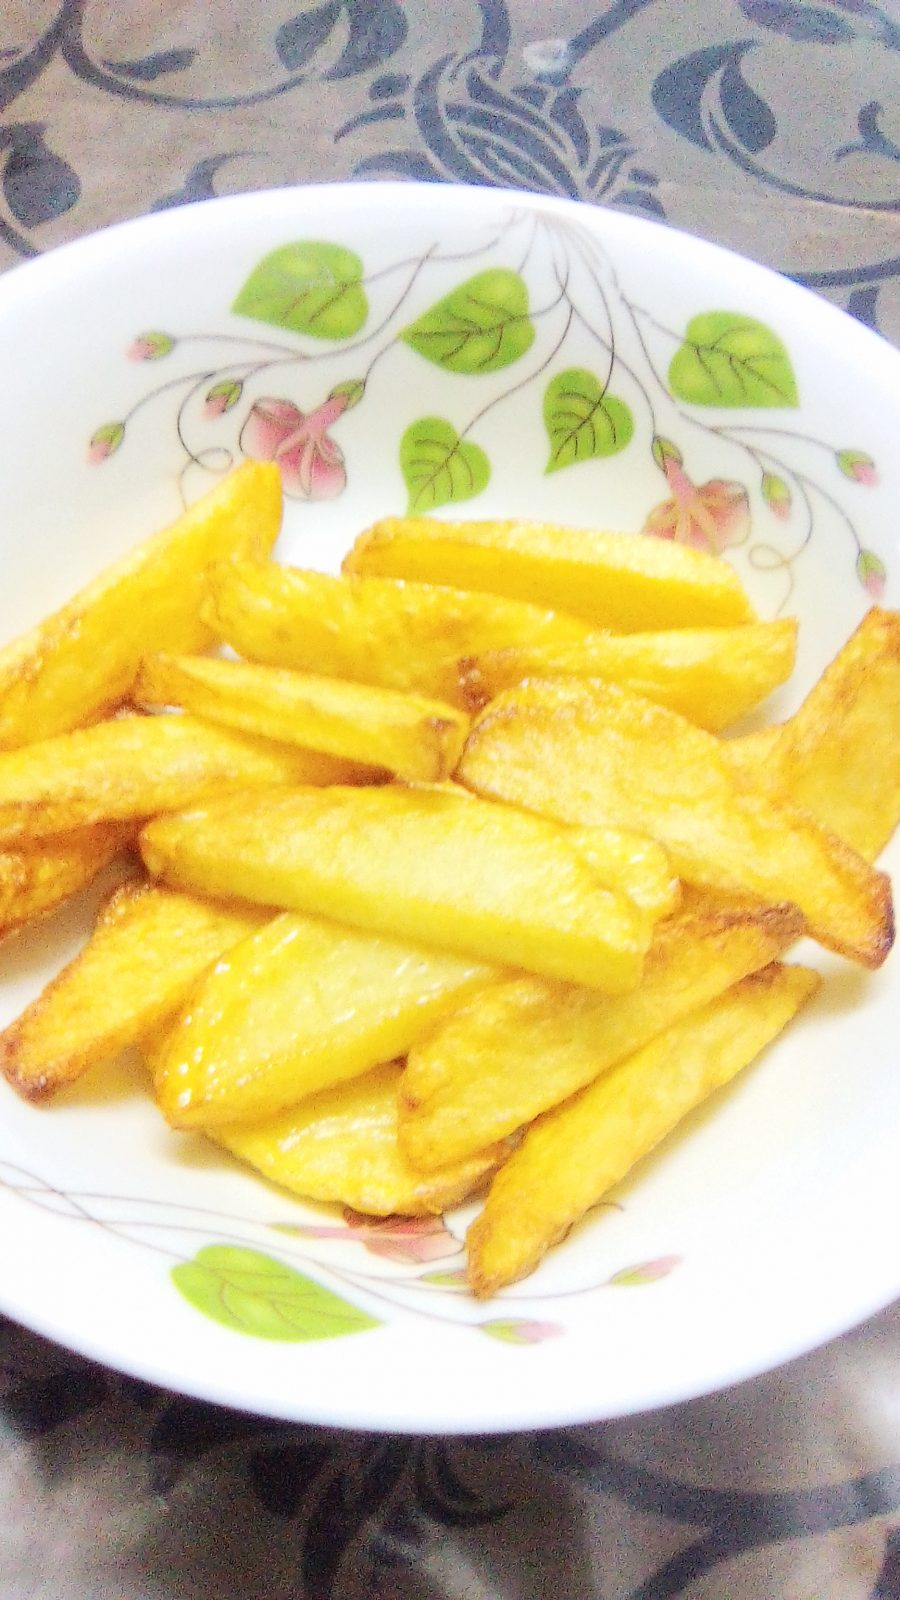 French Fry from Homemade Food Factory